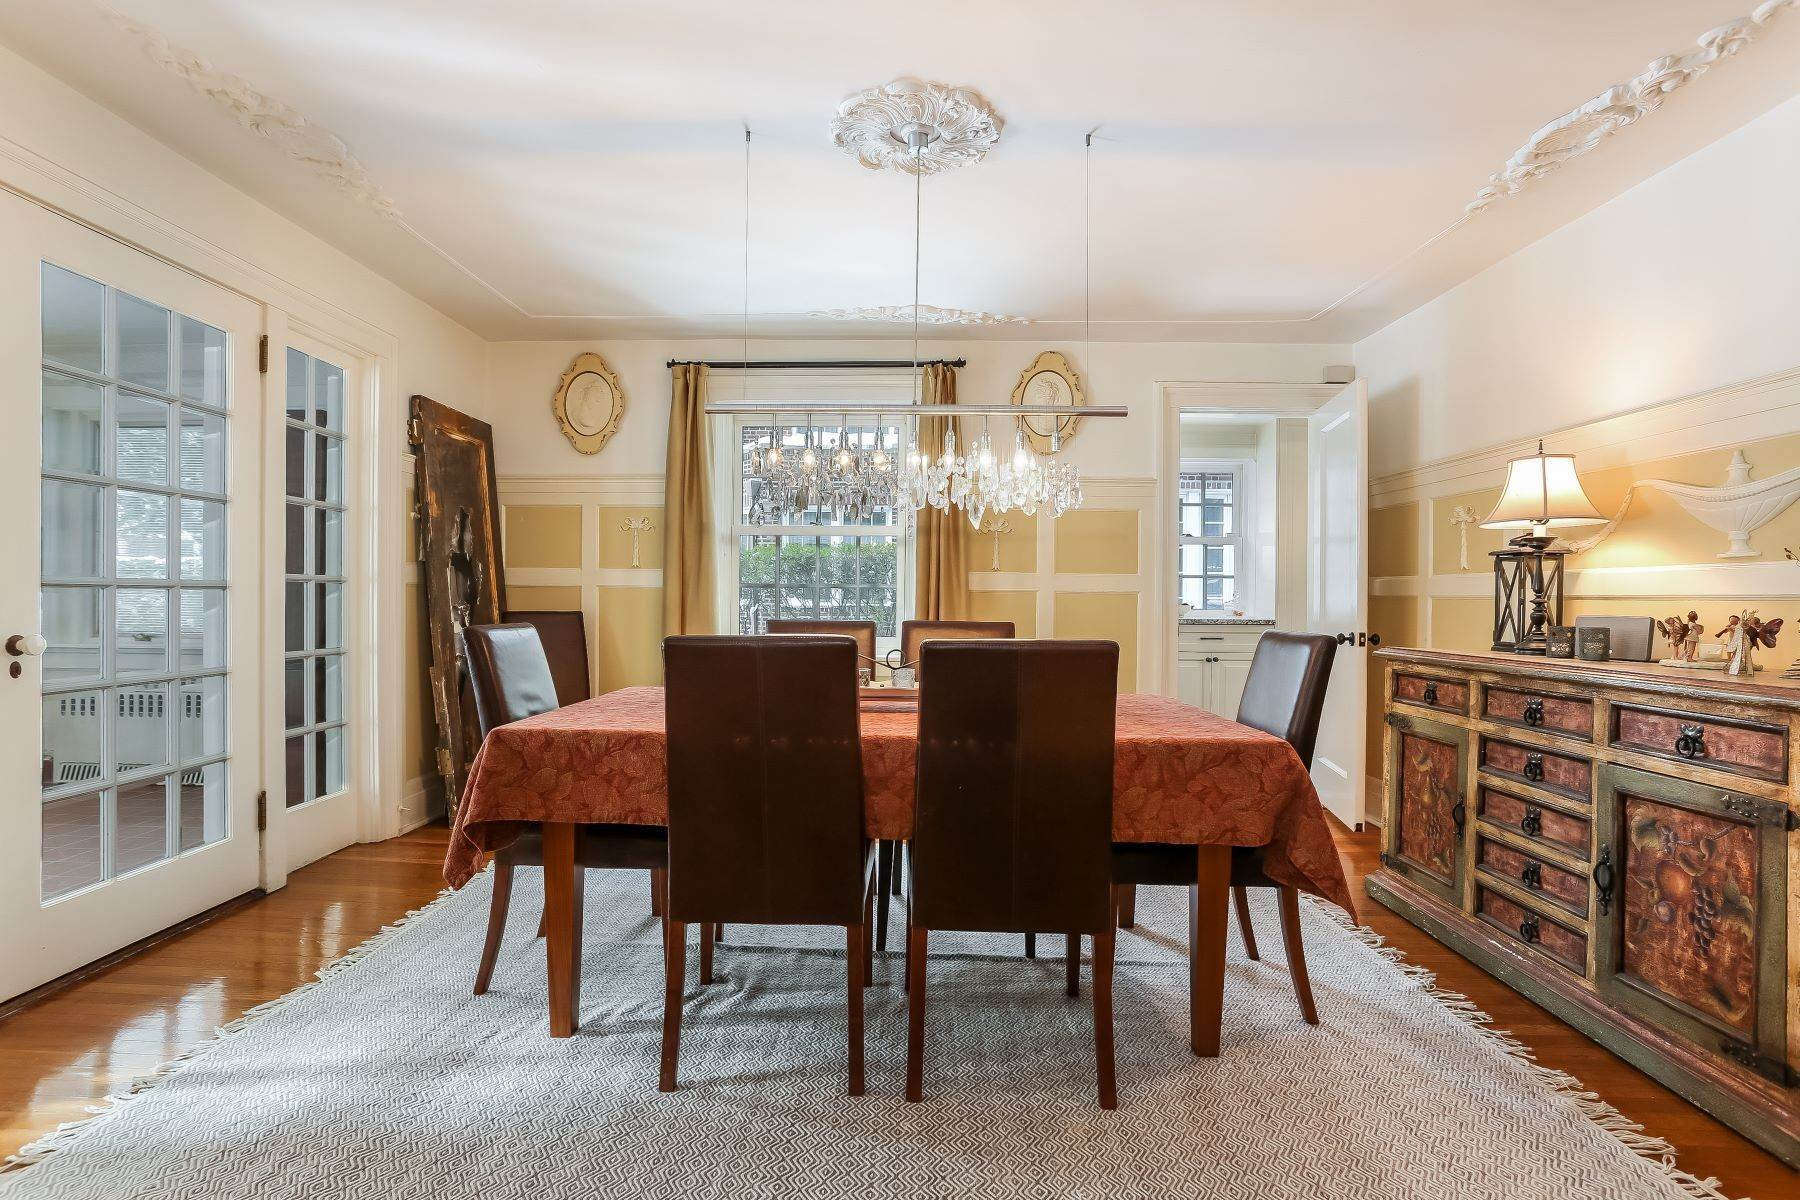 8. Single Family Homes for Sale at 'SPACIOUS STORYBOOK HOME, FULLY RENOVATED' 19 Groton Street, Forest Hills Gardens, Forest Hills, New York 11375 United States